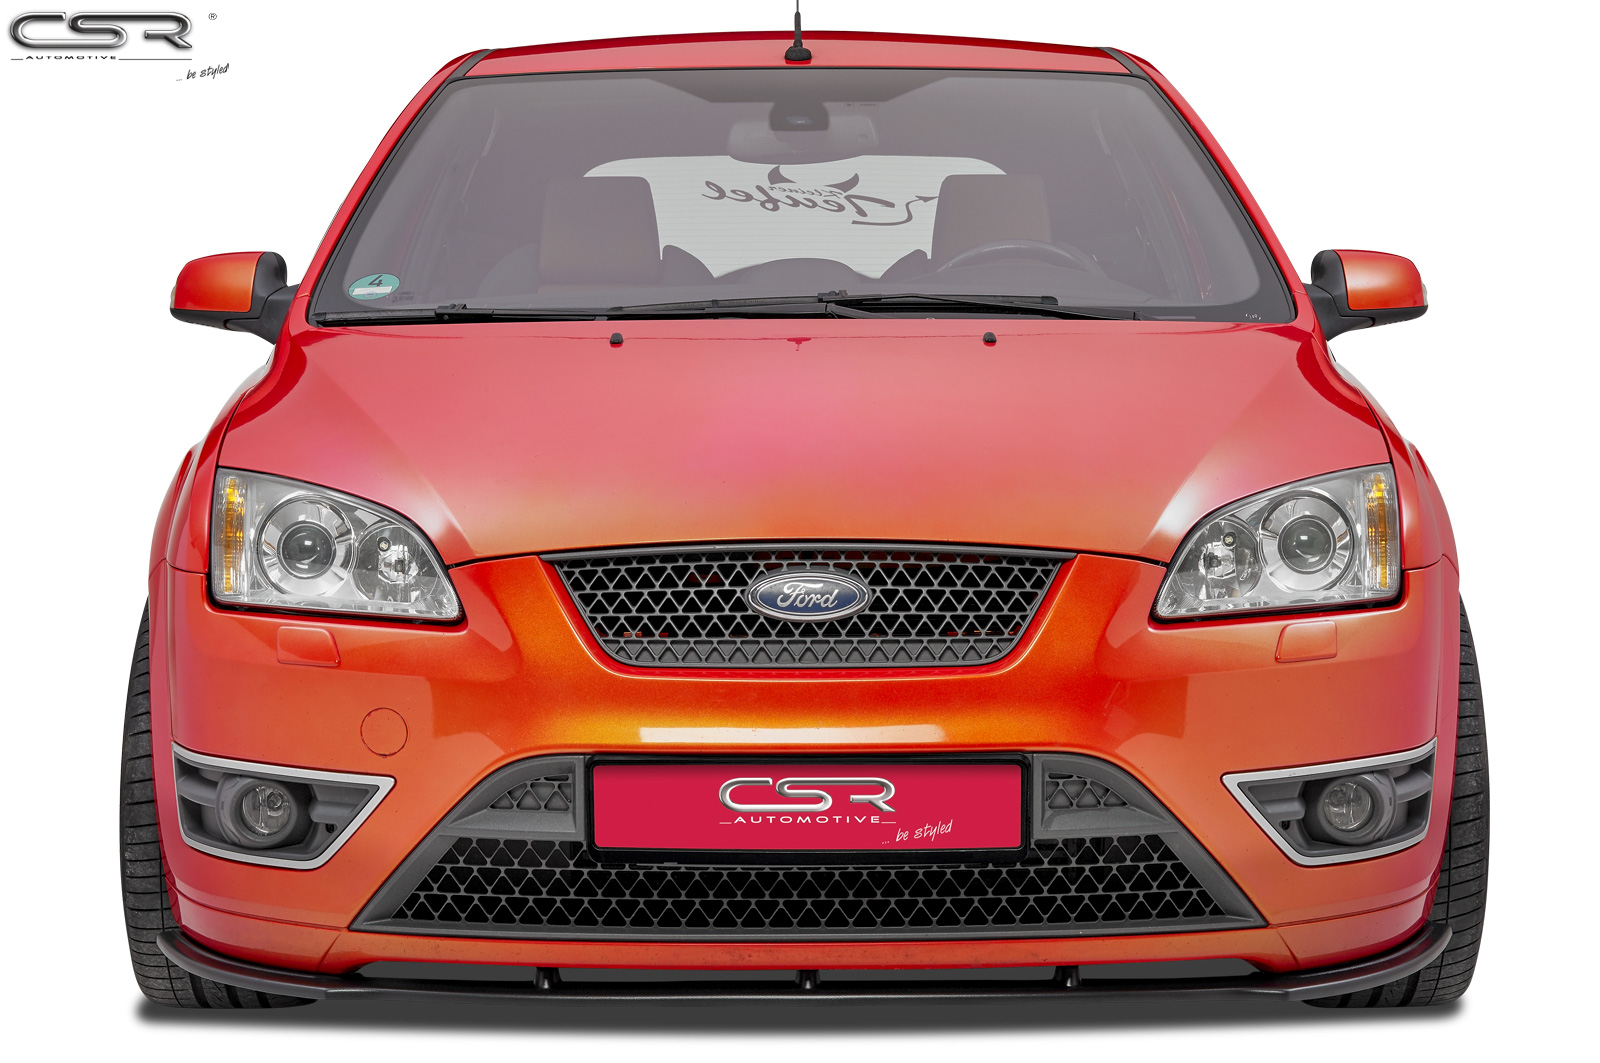 ford ford focus mk2 st p edn spoiler cup csr tuning. Black Bedroom Furniture Sets. Home Design Ideas